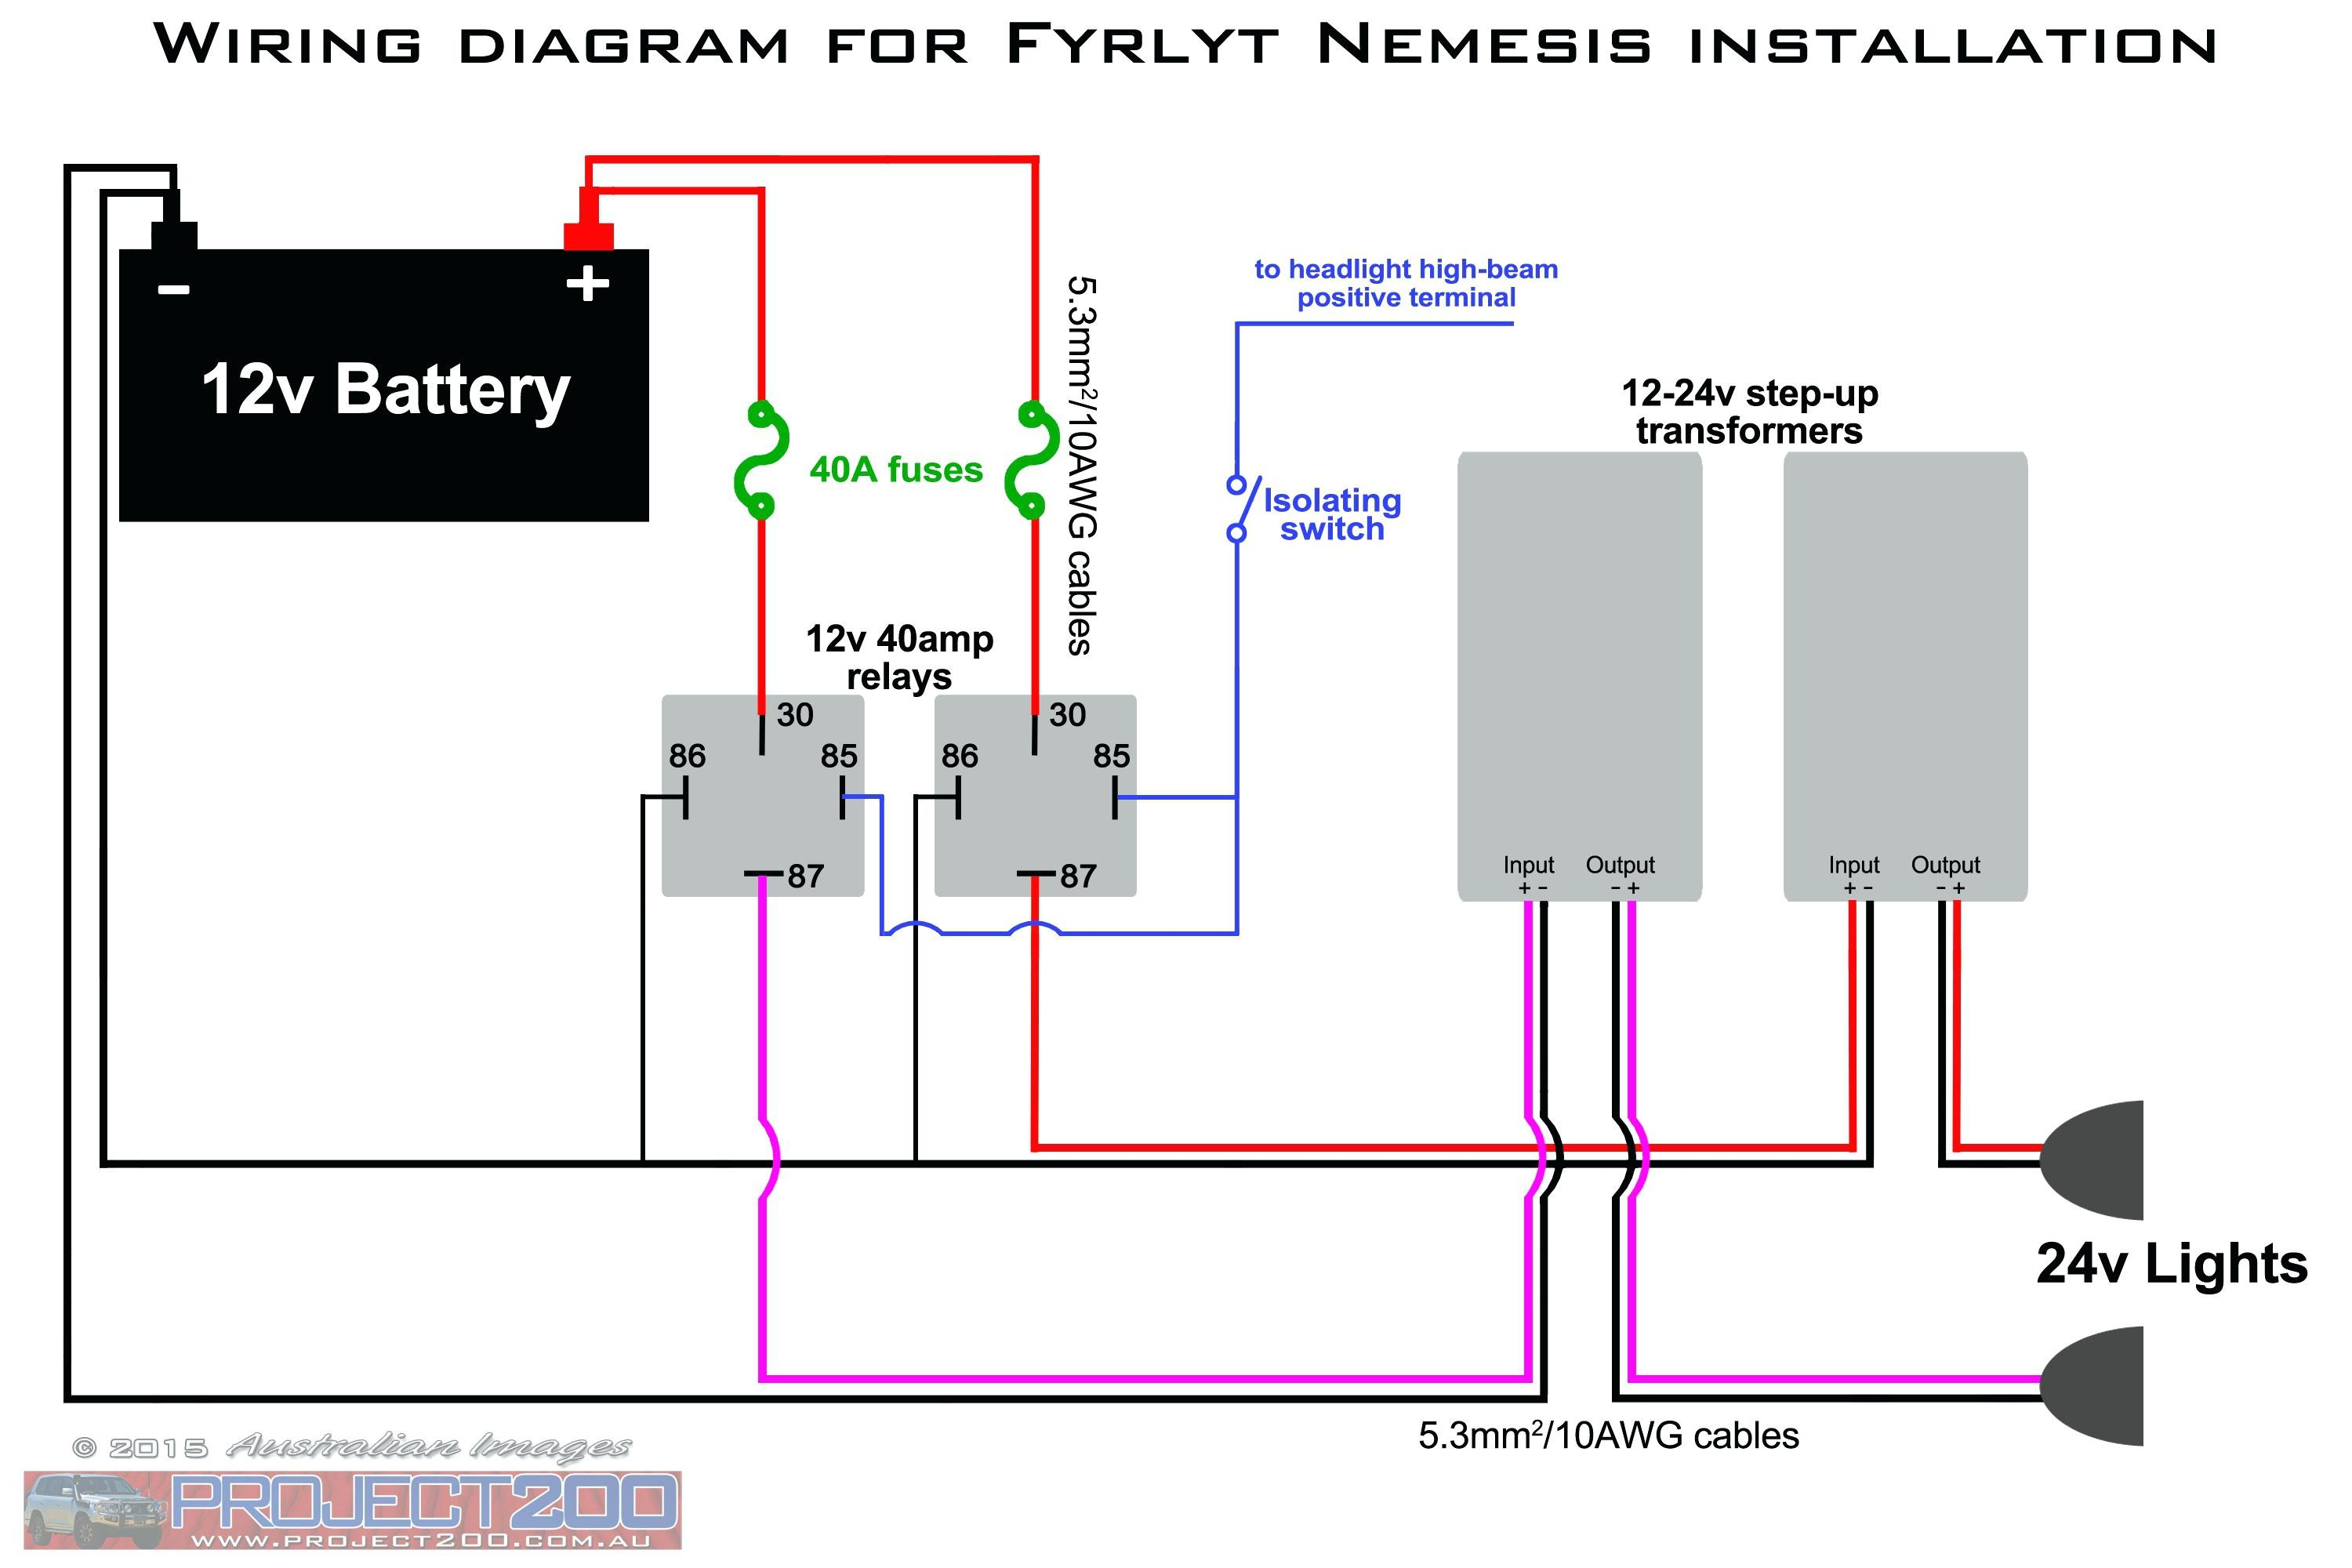 Wiring Diagram For Ceiling Fan Switch Automotive Probably Super Awesome Collection 12v 12V Panel